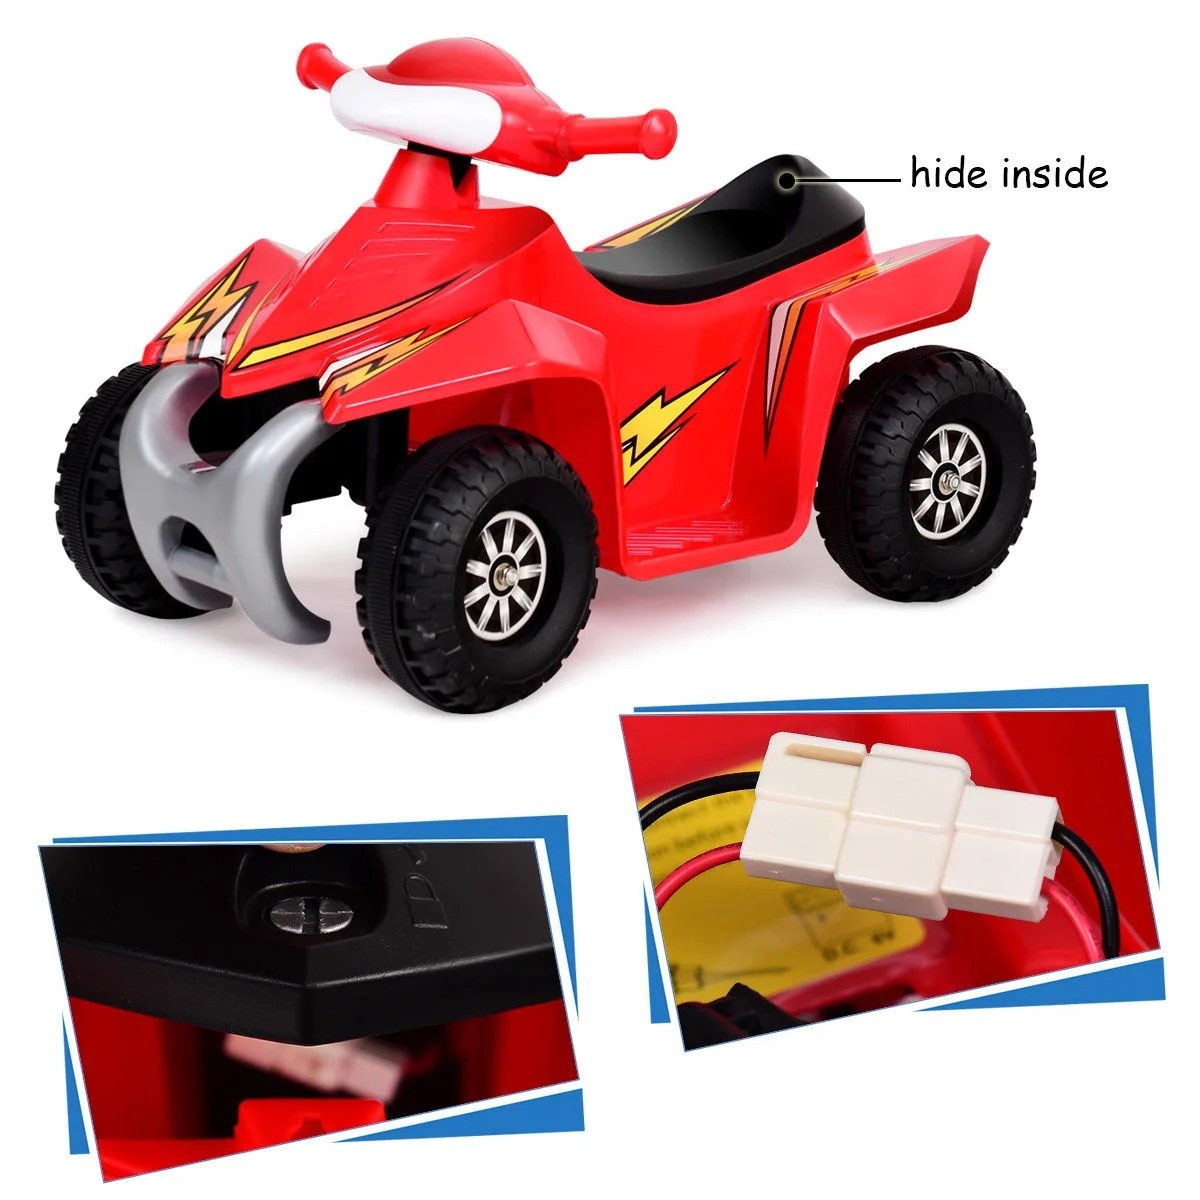 Toddler Car Dashboard Gymax Kids Electric Car Battery Power Toddler Vehicle W Dashboard Radio Light Red